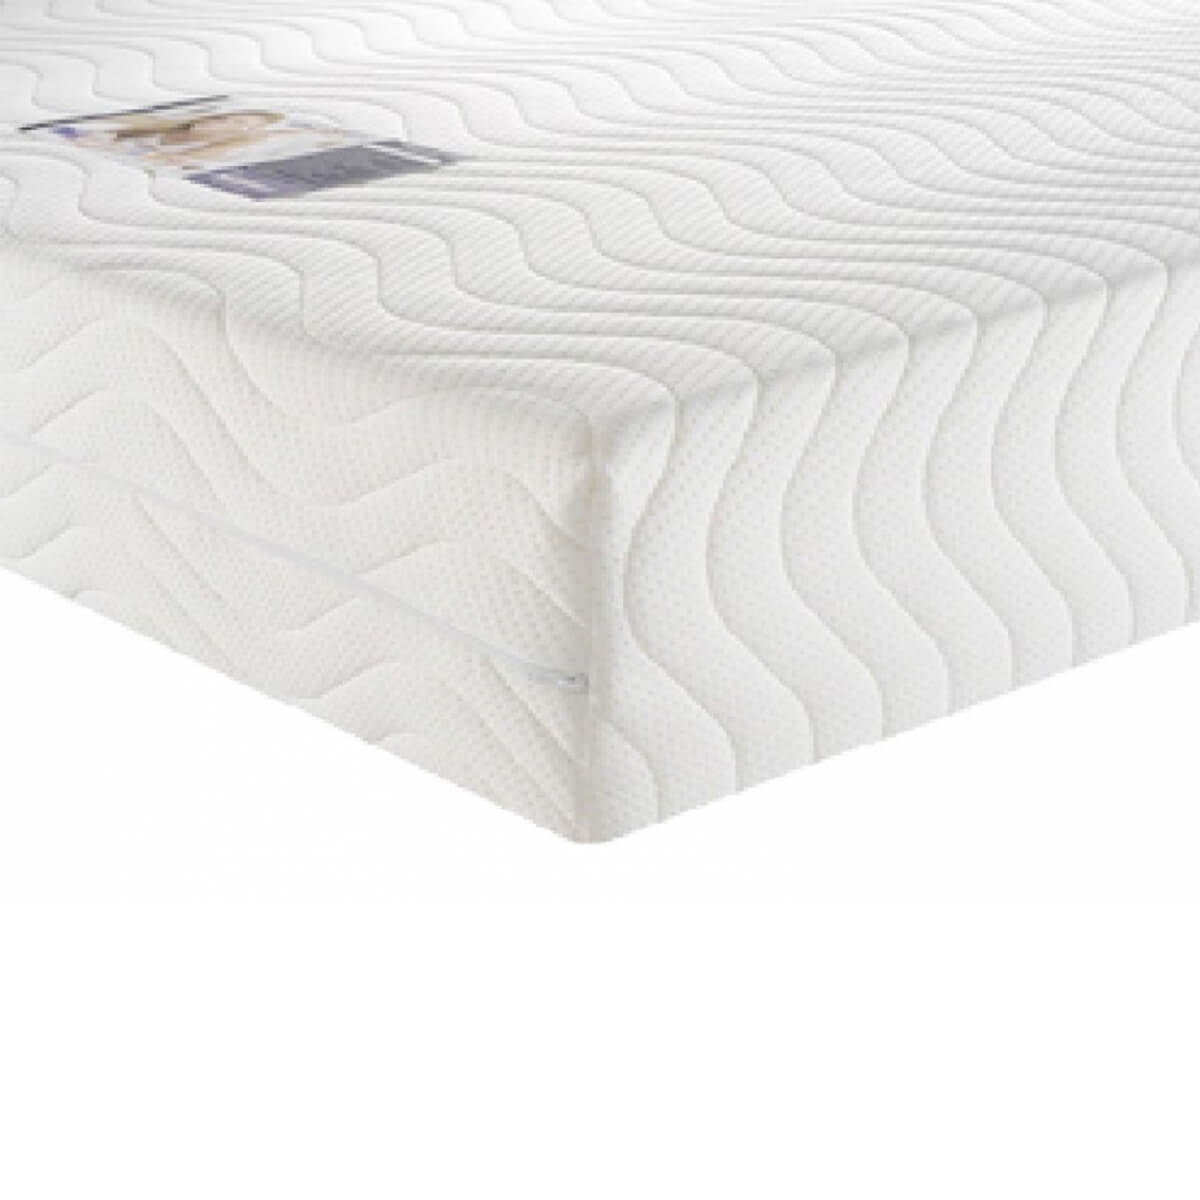 Concept Premium 4000 Memory Foam Mattress (Mattress Size: 60 Super King)